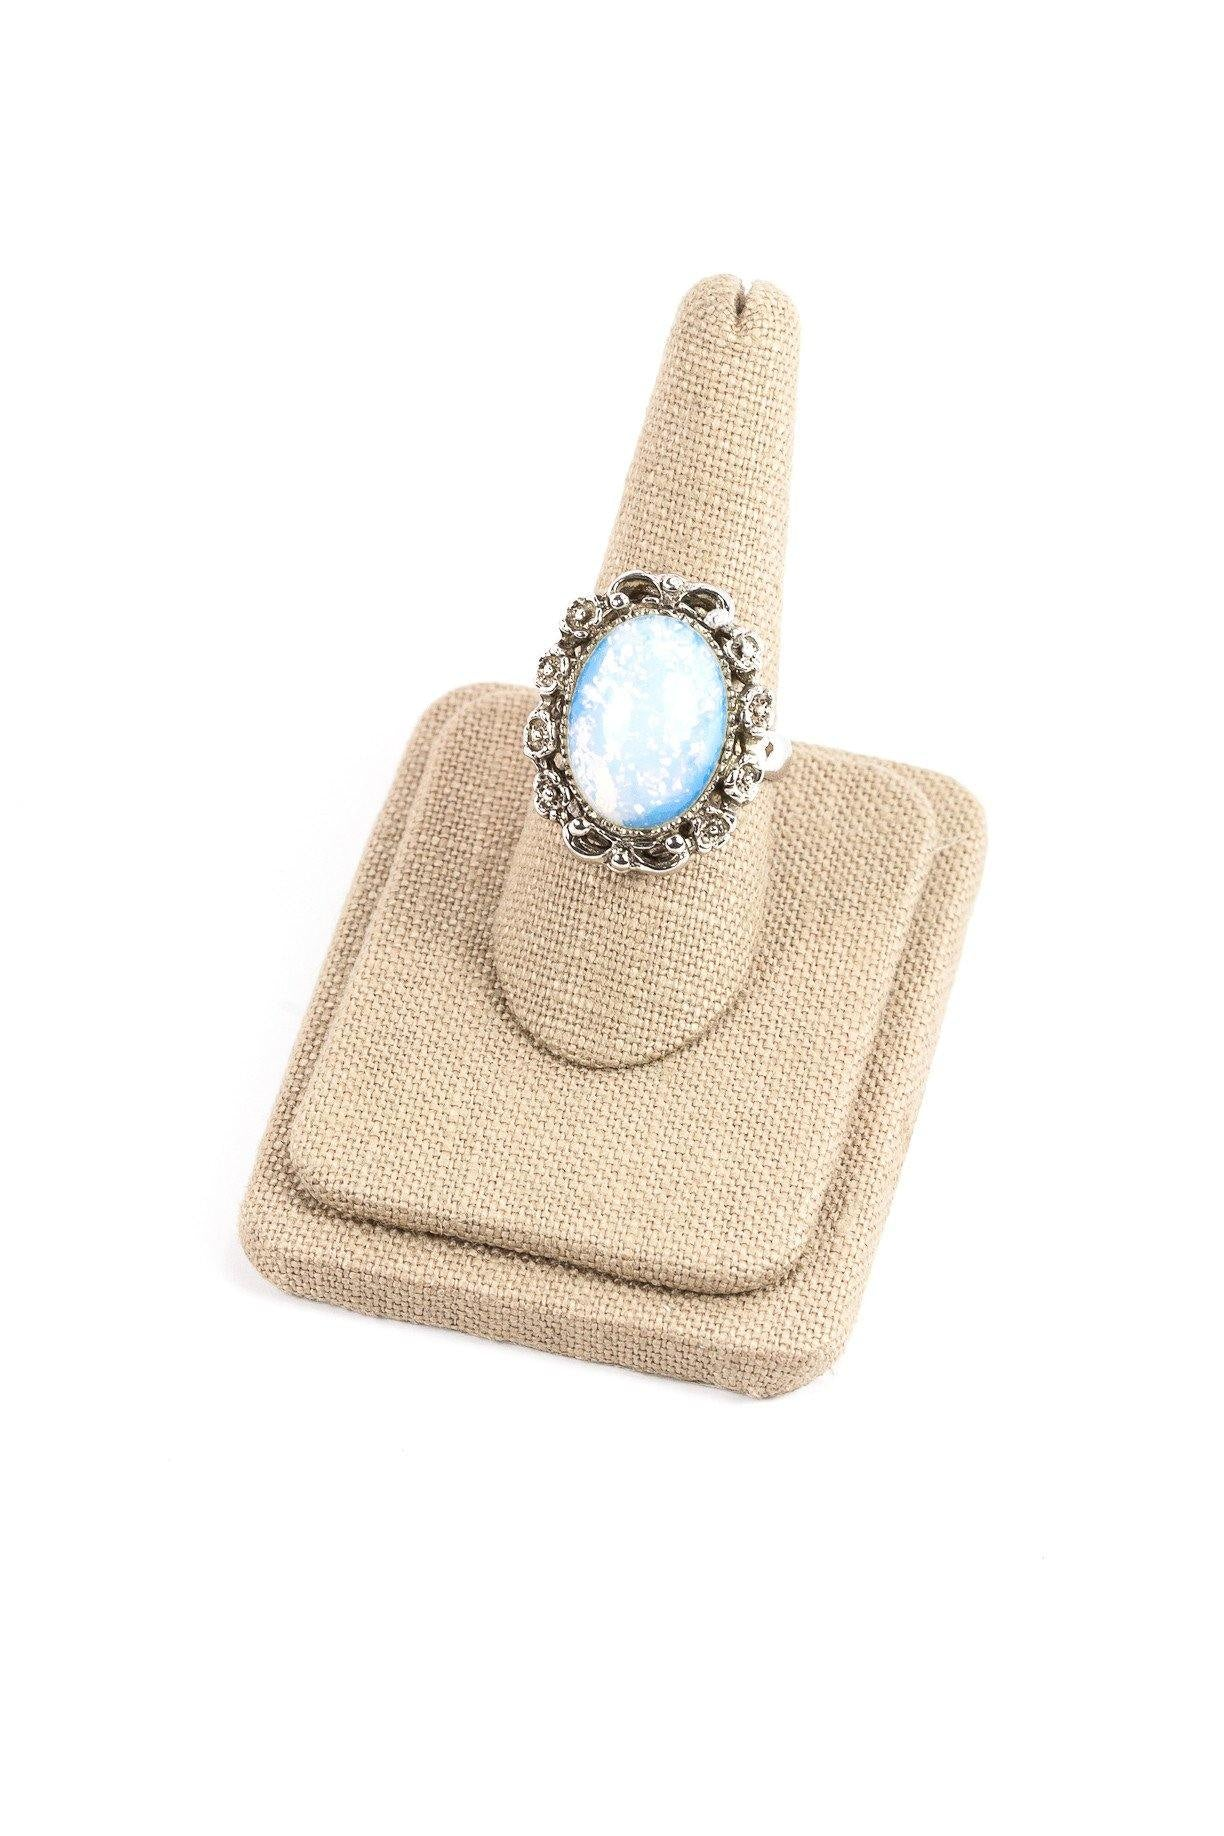 80's__Park Lane__Opal Cocktail Ring Sz 9